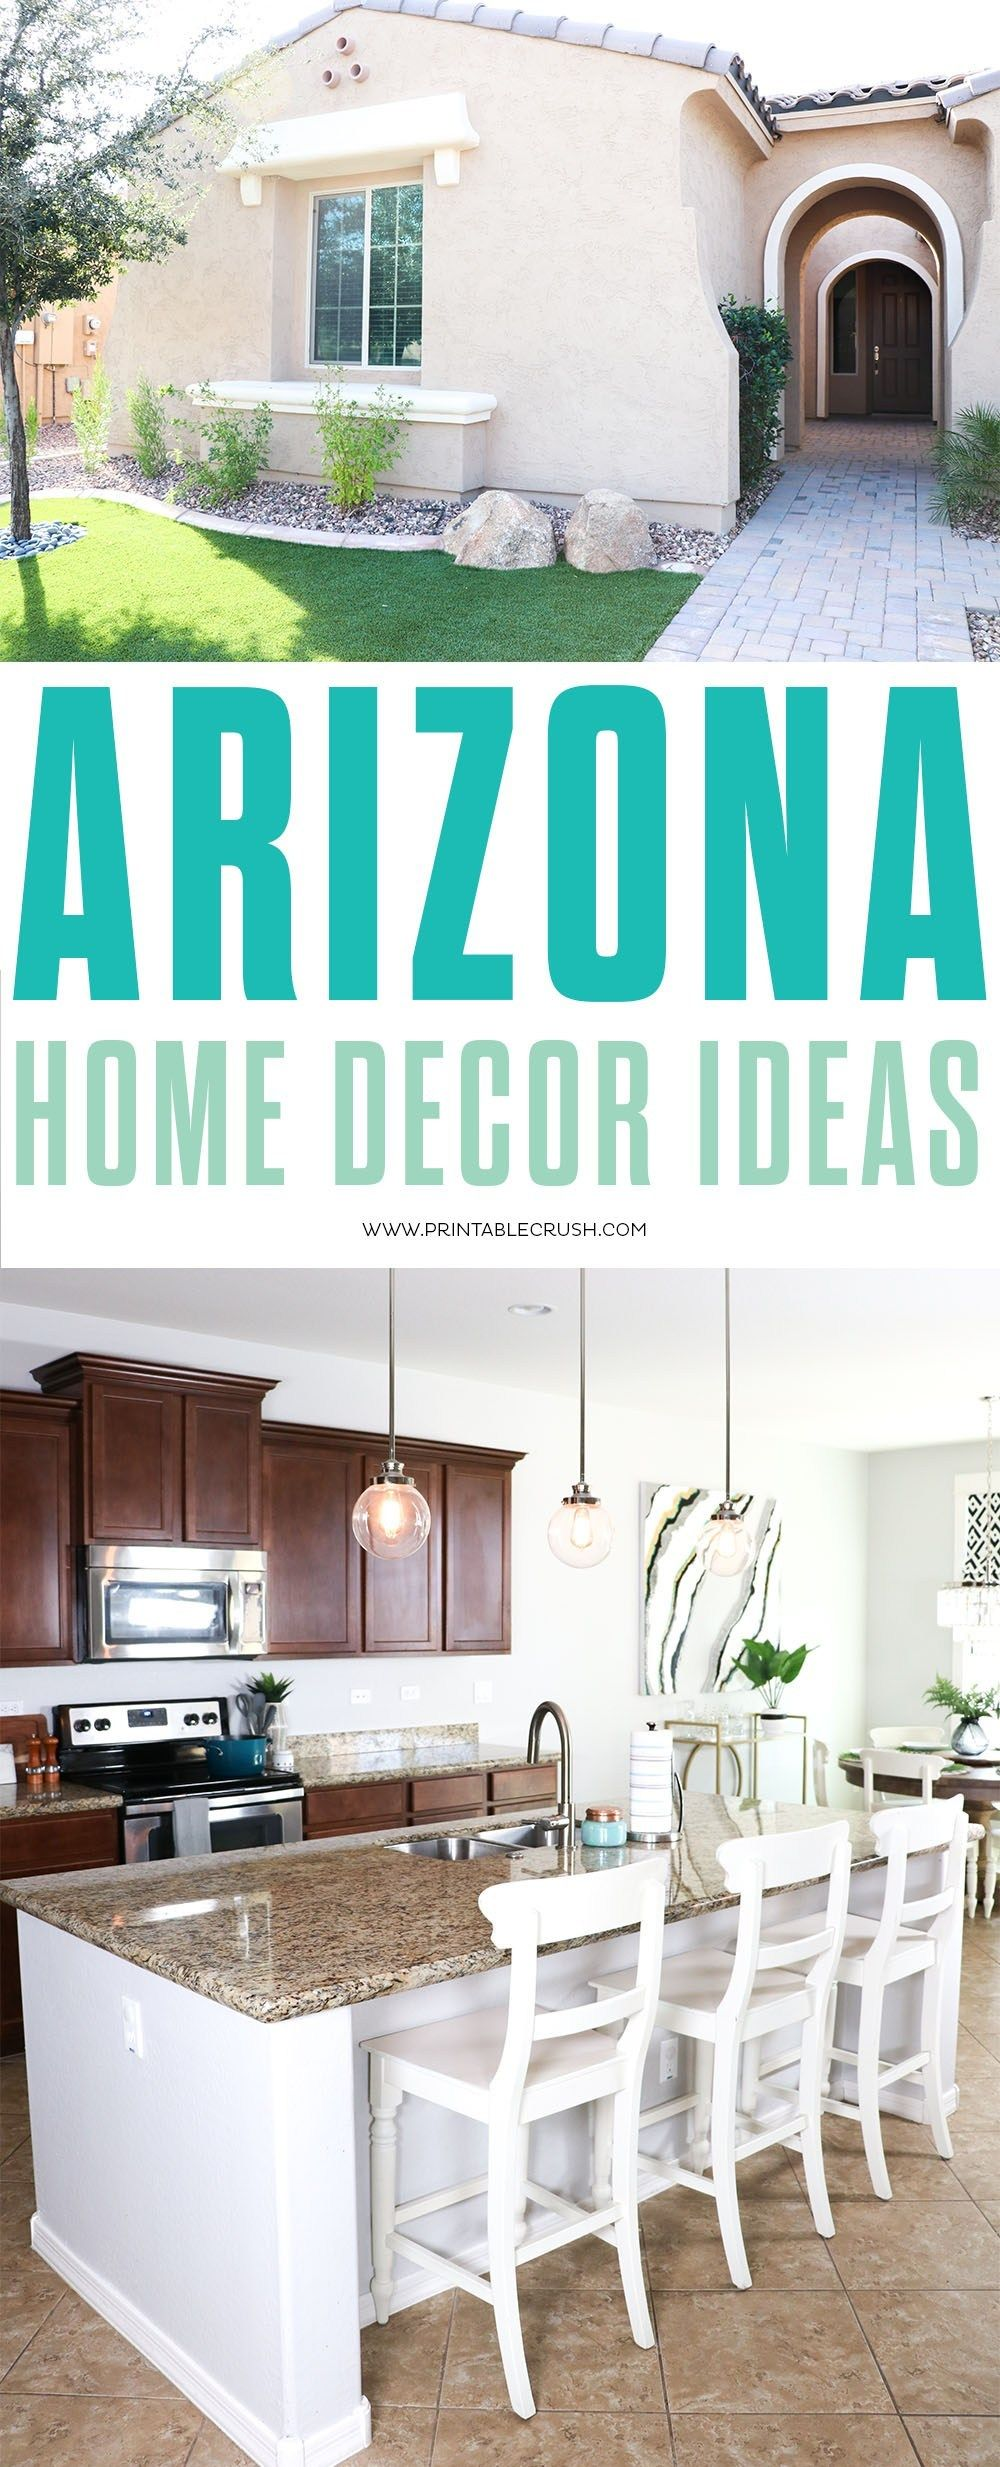 Arizona Home Decor Ideas Arizona Decor Arizona House Decor